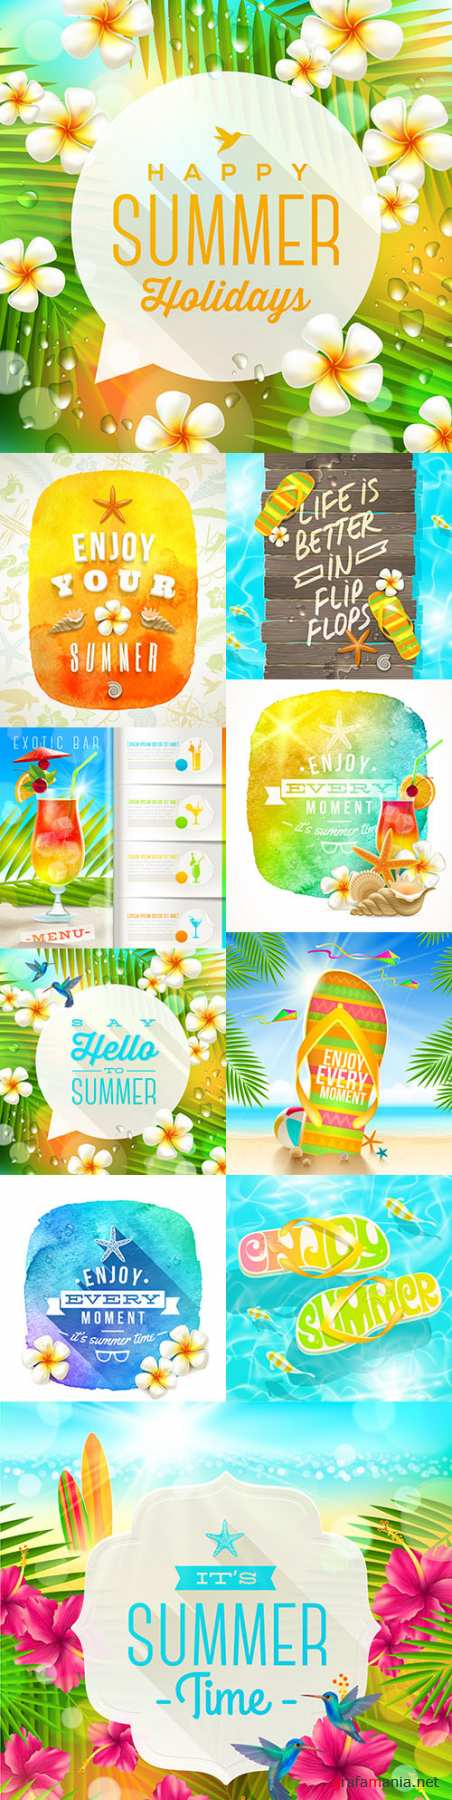 Summer greeting time jasmine tropical flowers watercolour banner